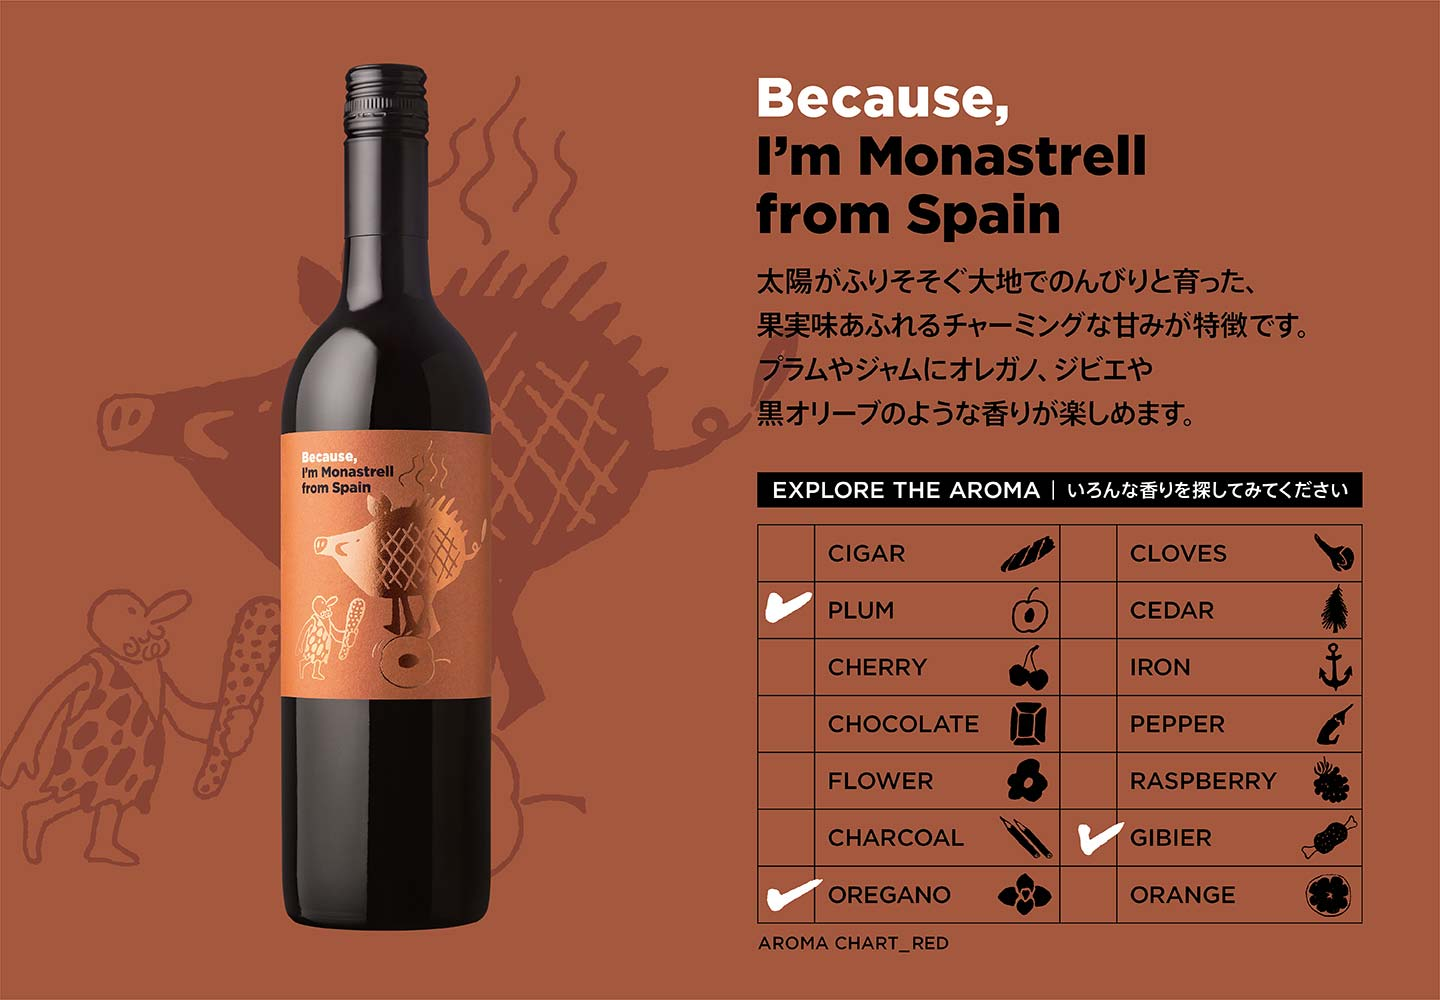 Because, I'm Monastrell from Spain